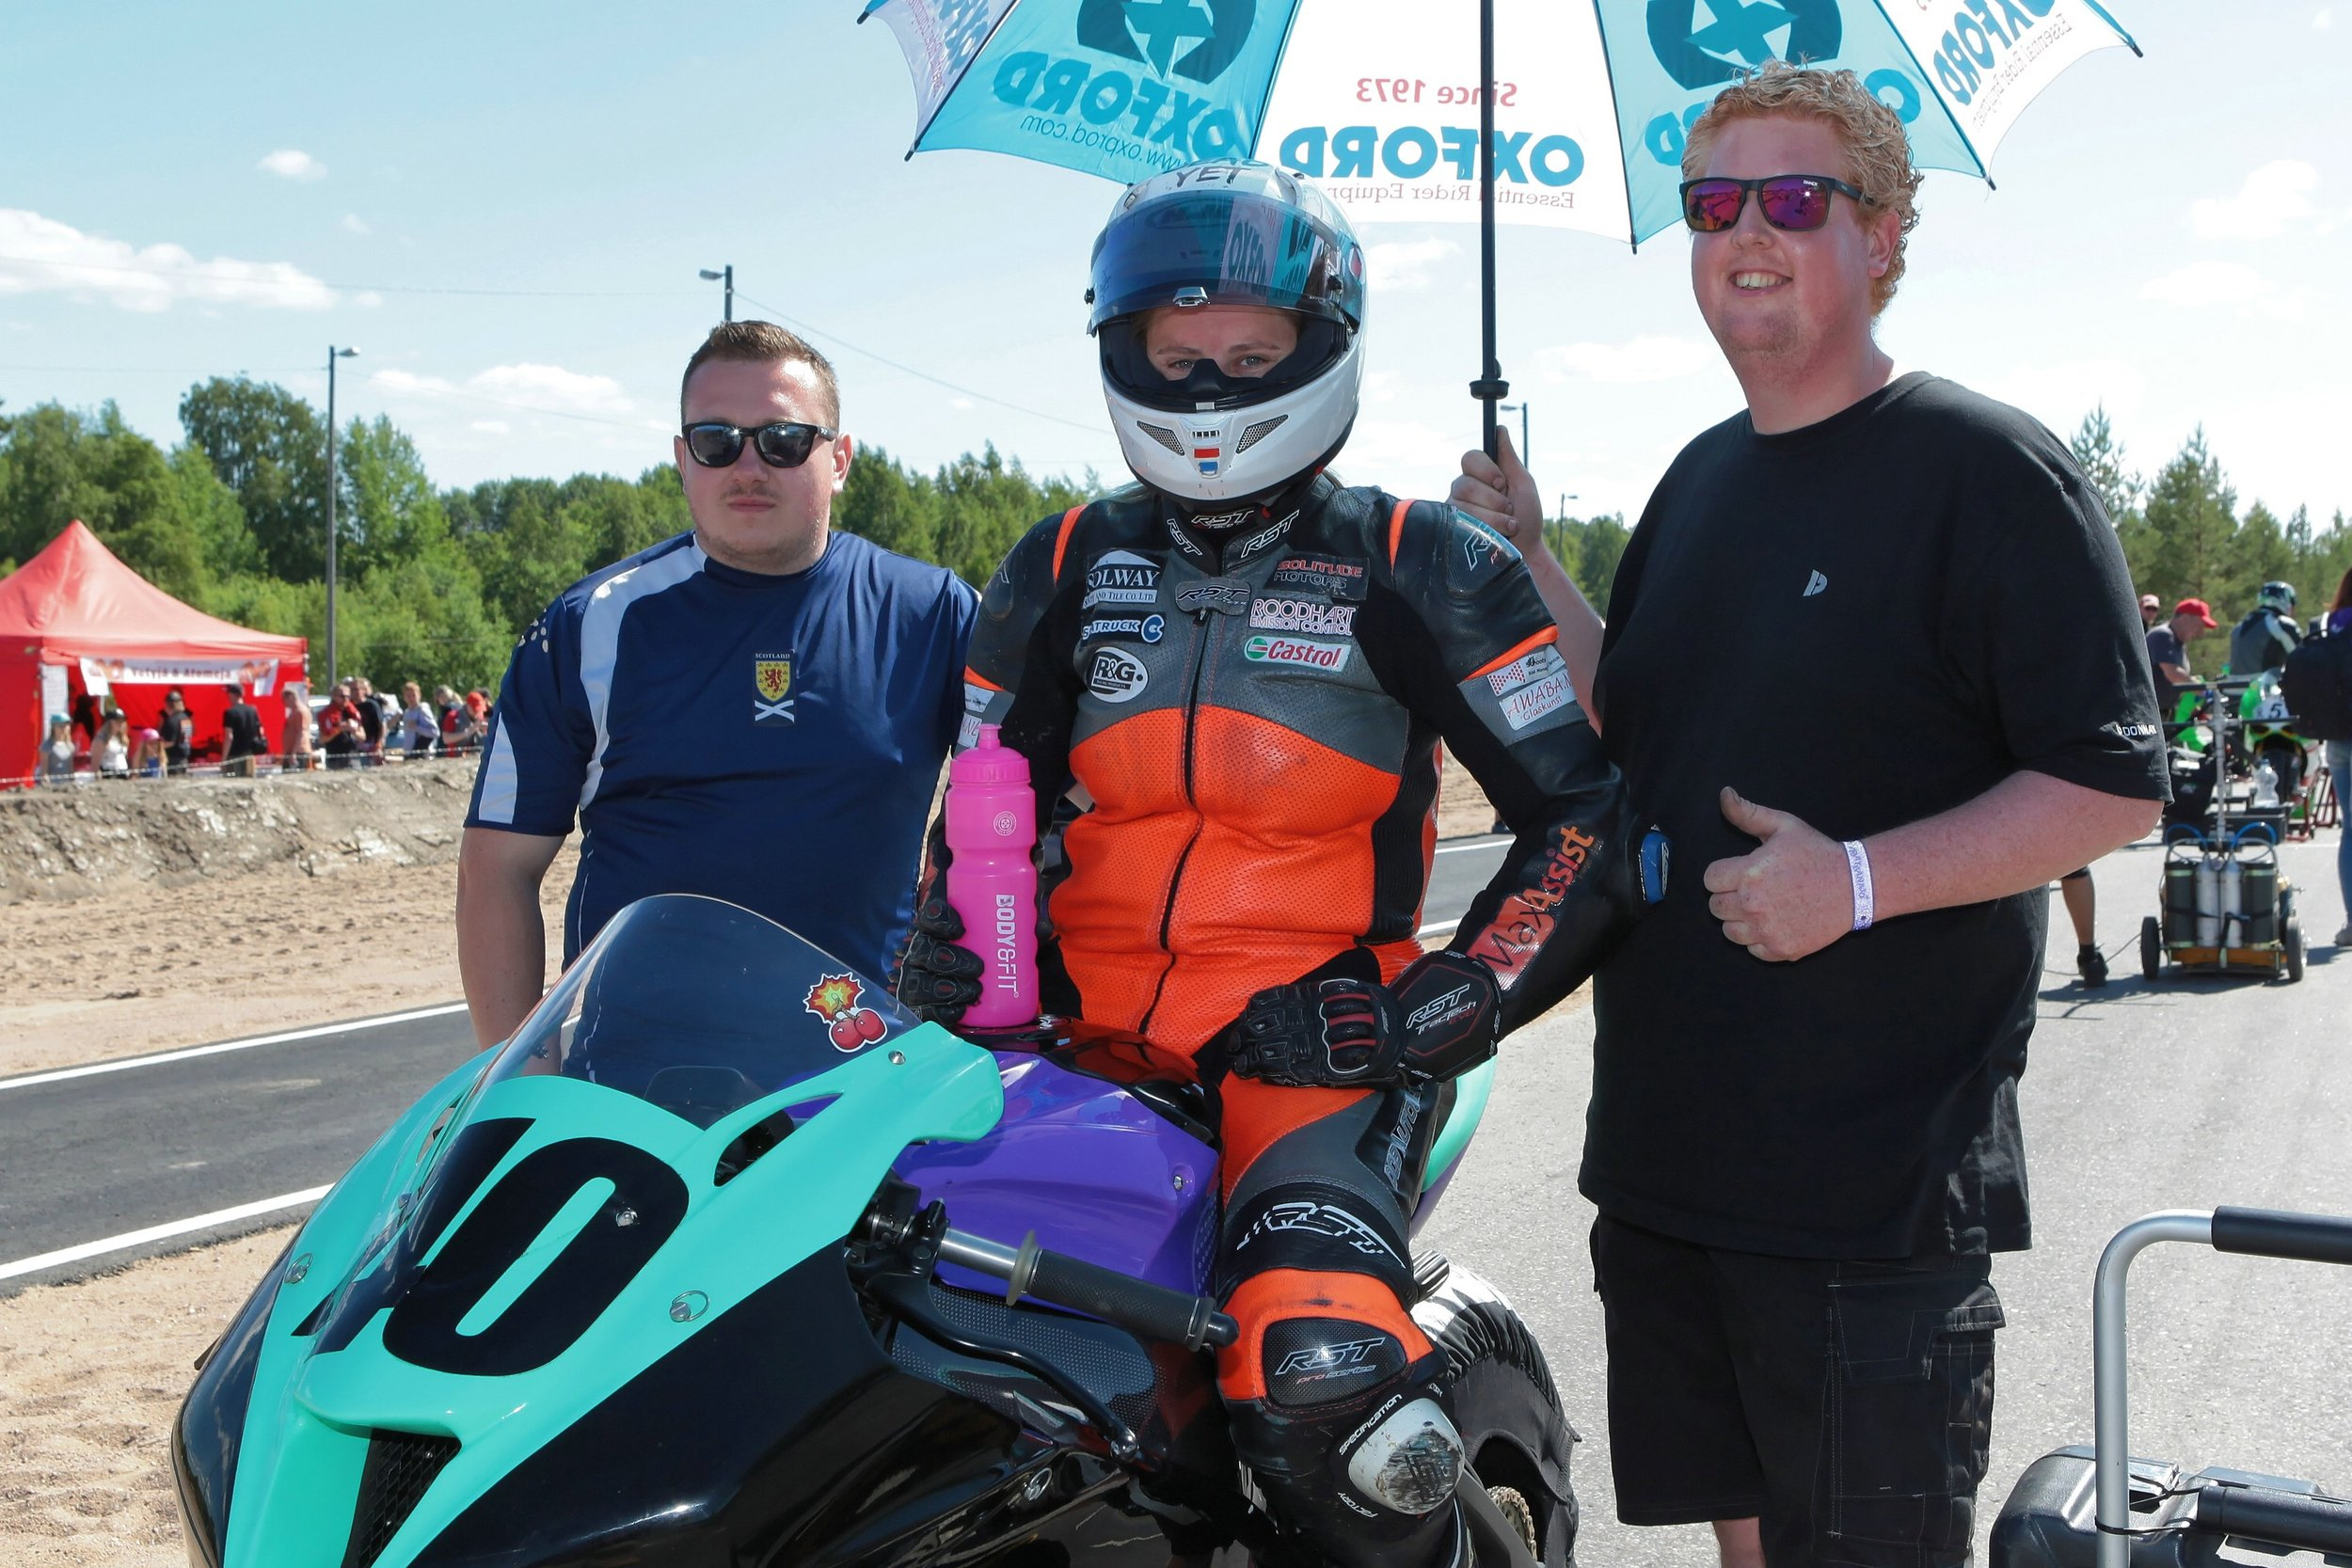 On the grid with Chris and Stefan, love our little dream team! (photo by Karl Heinz Kalkhake)